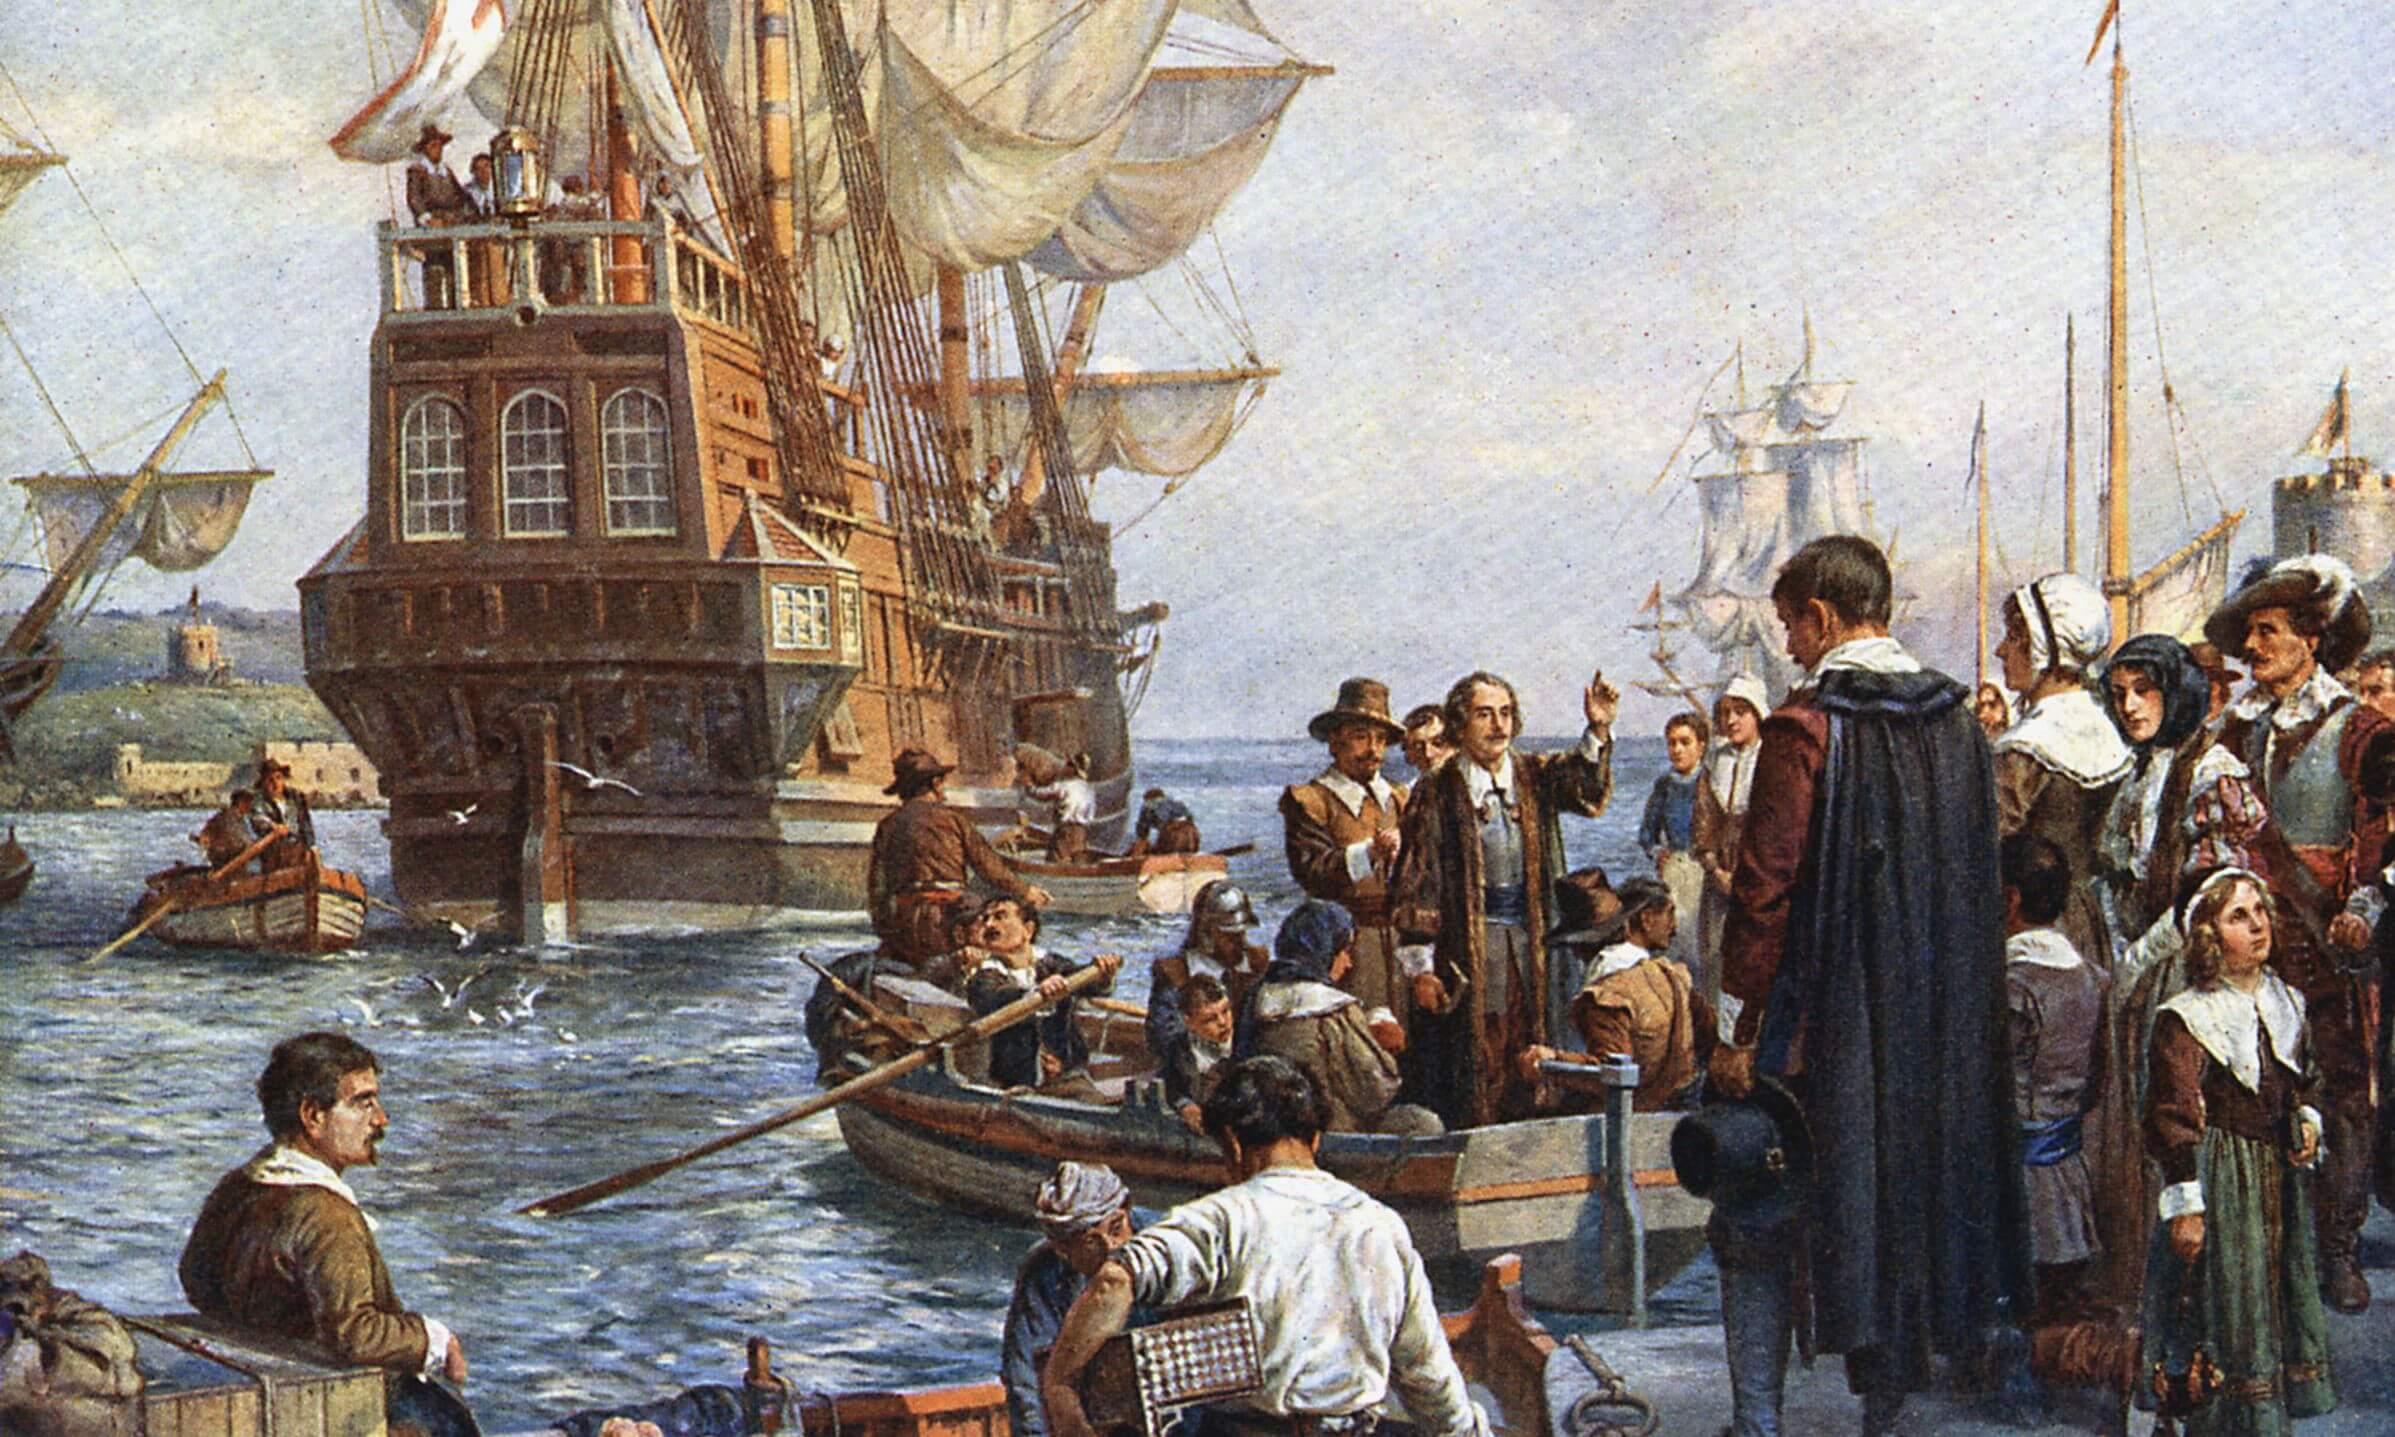 Pilgrims departing on Mayflower